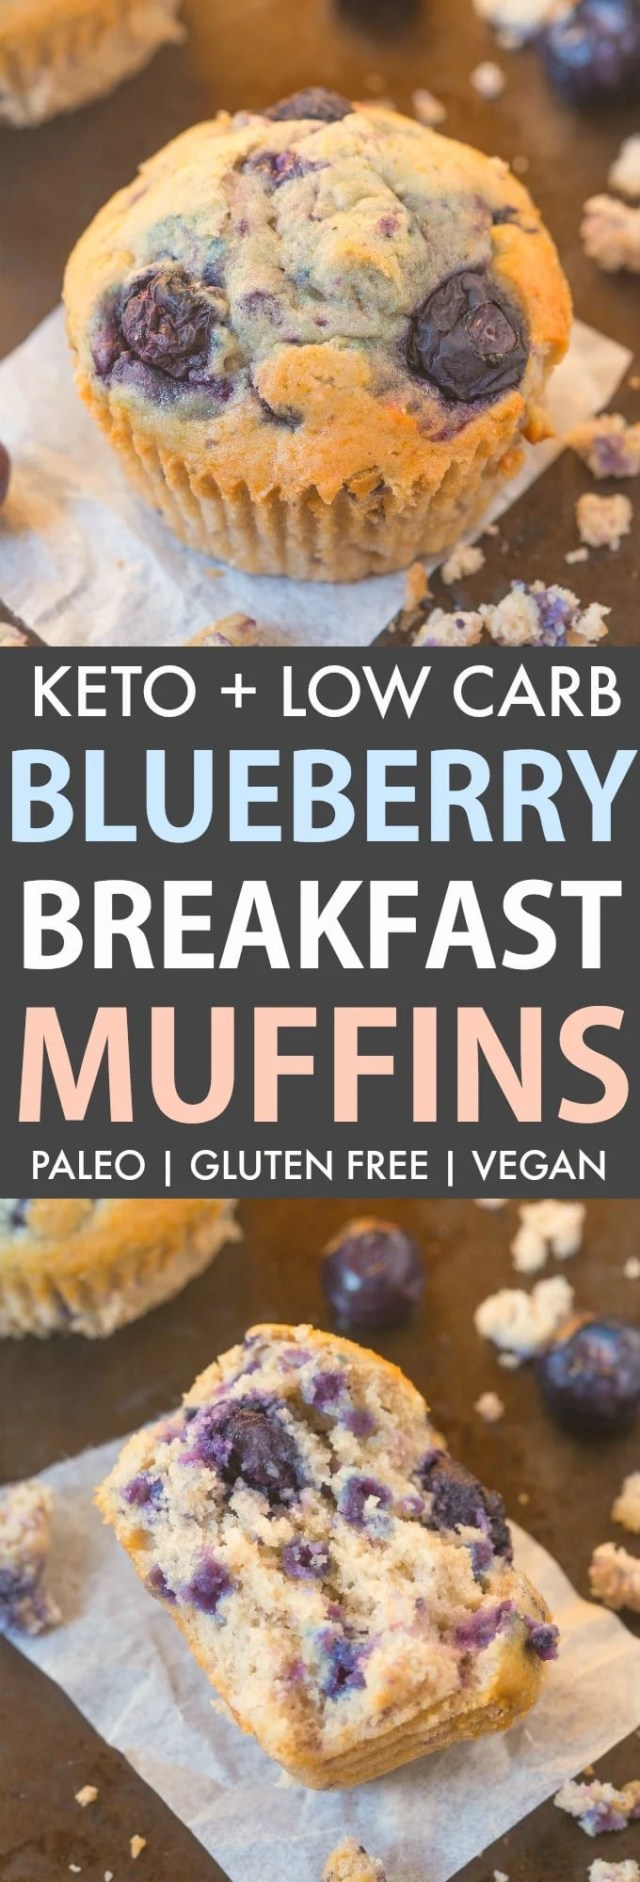 Keto and Low Carb Blueberry Muffins loaded with blueberries